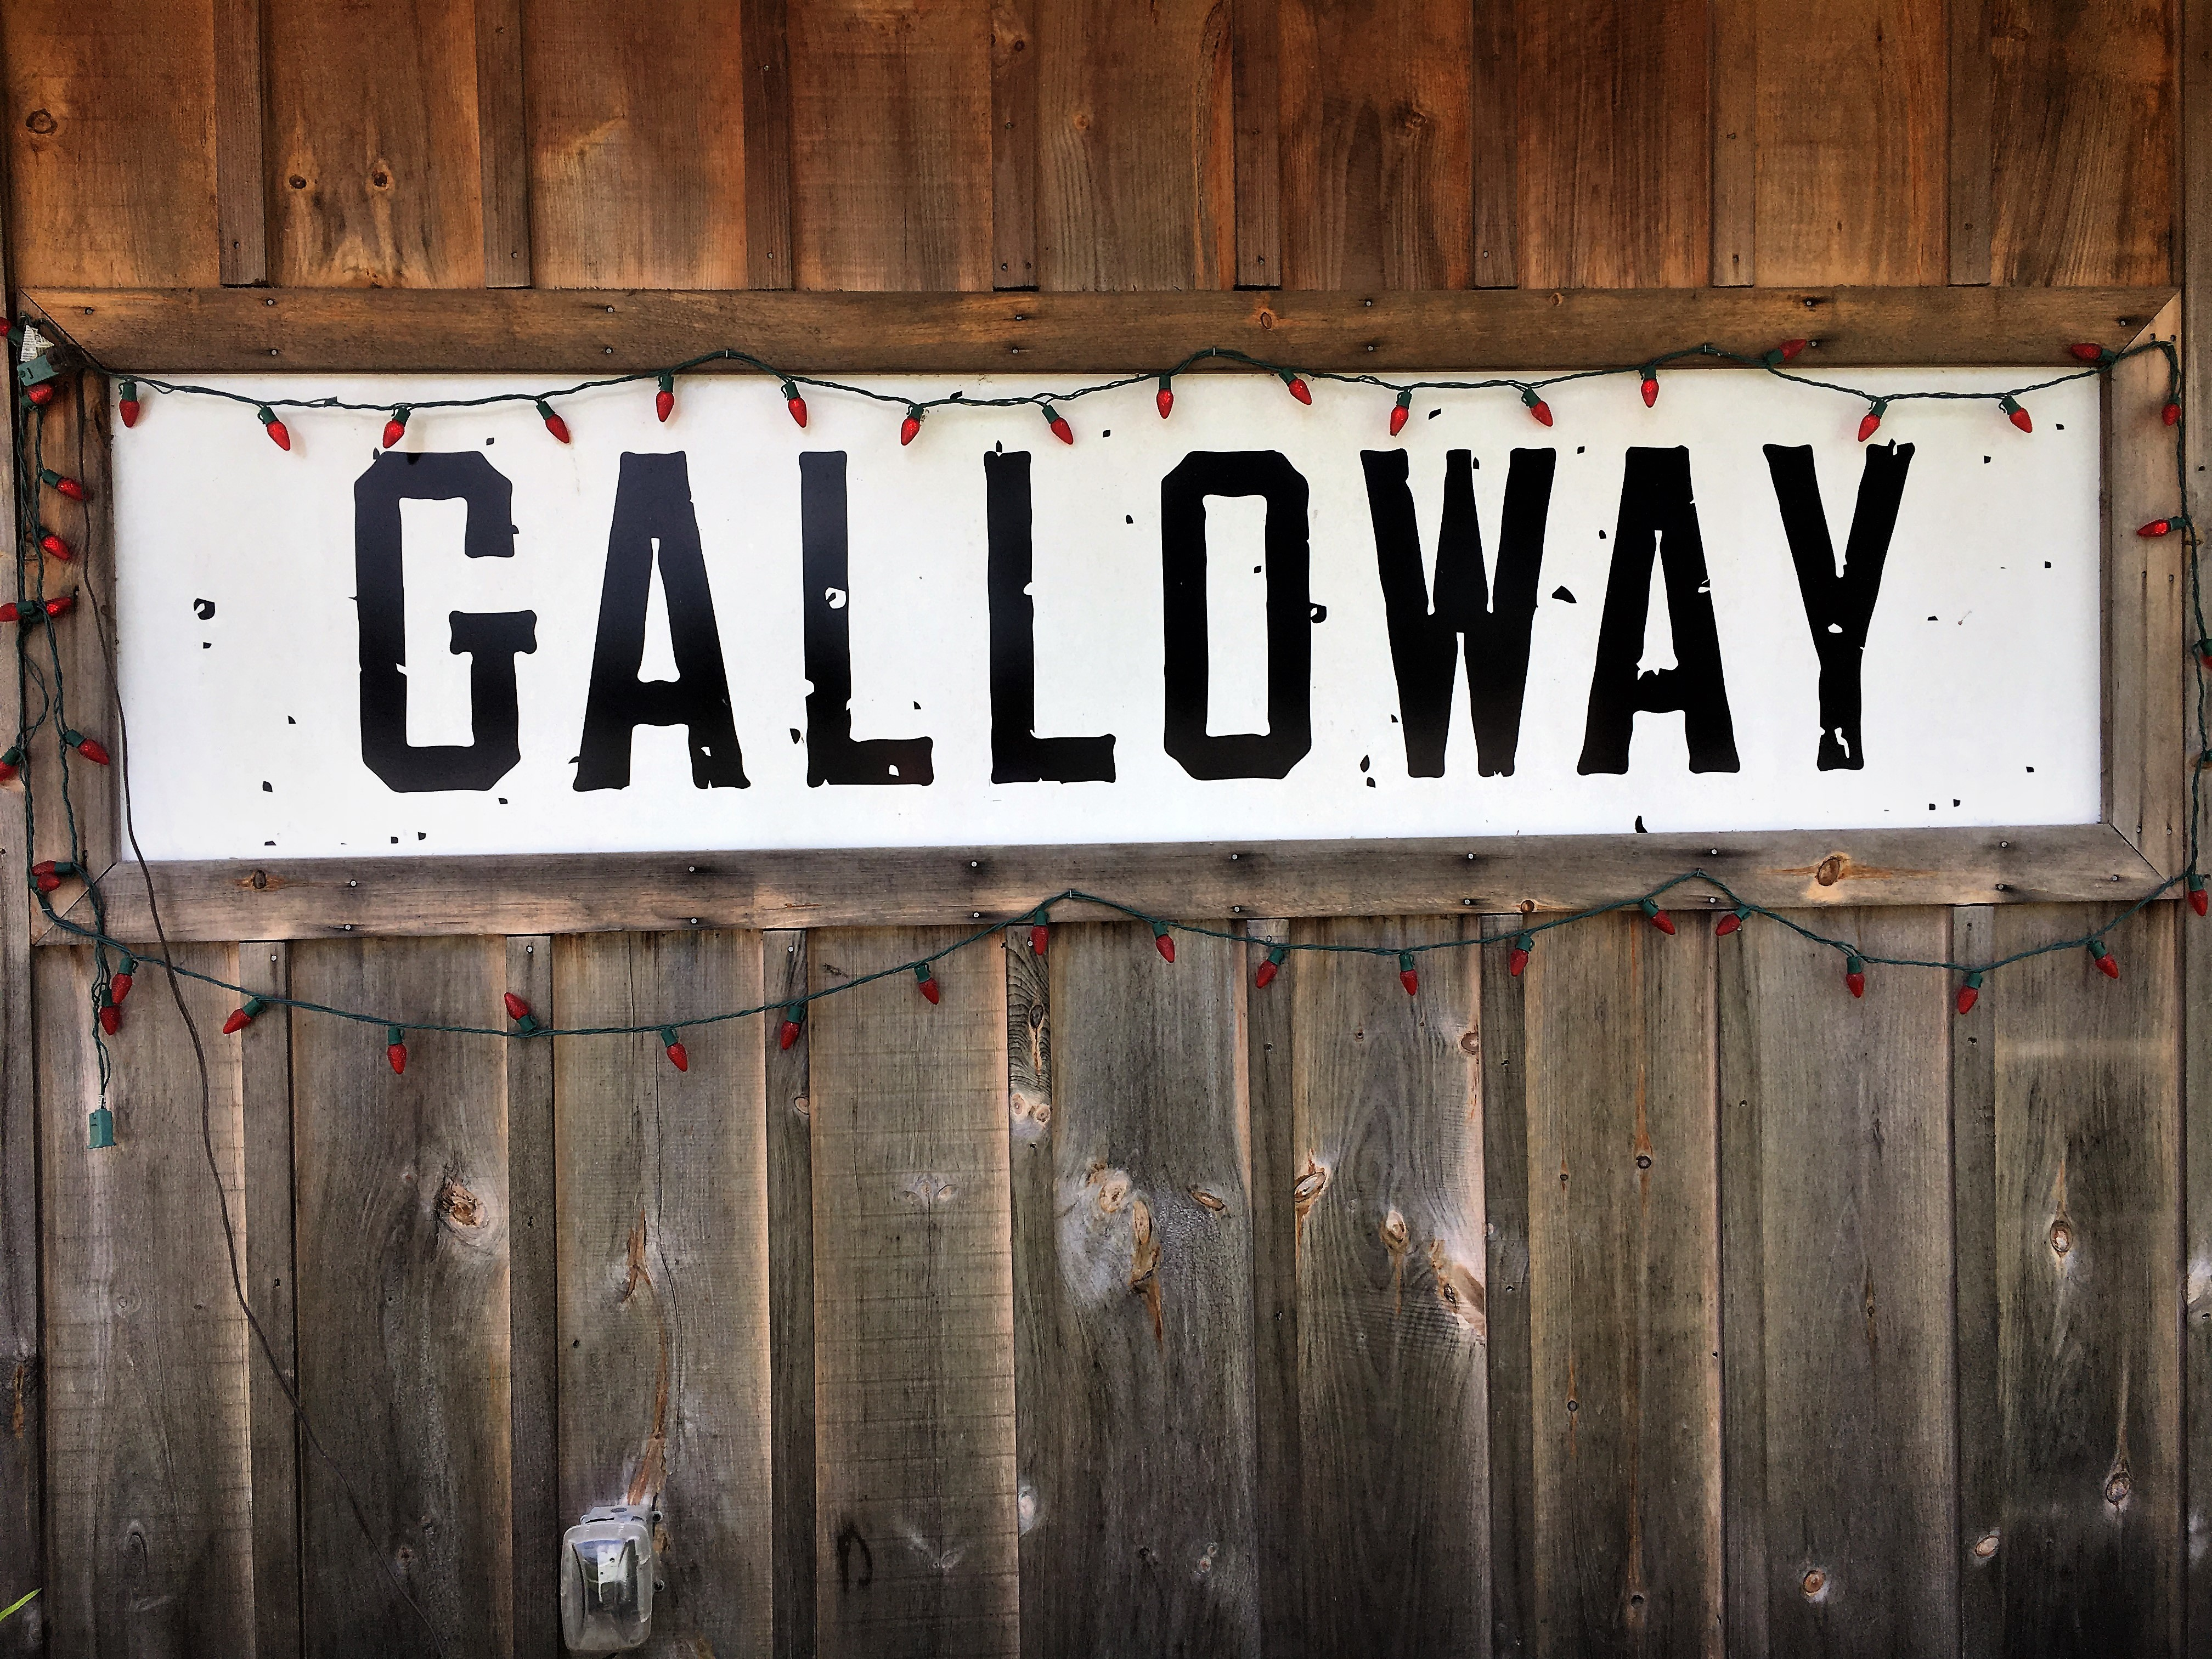 Galloway Grill